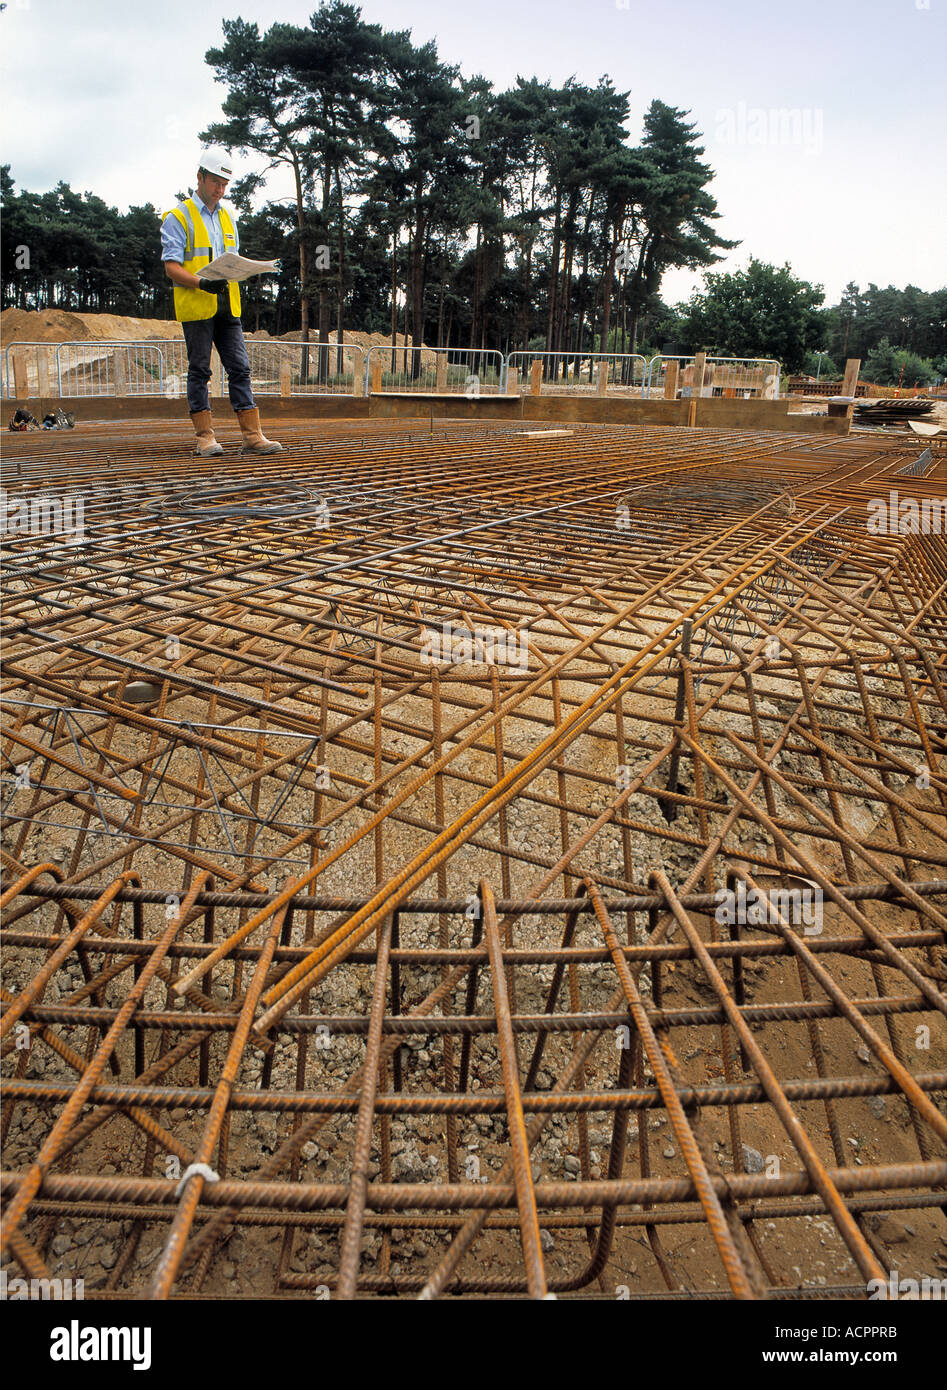 Inspecting the steelwork for a reinforced slab at a waste water treatment plant under construction. - Stock Image